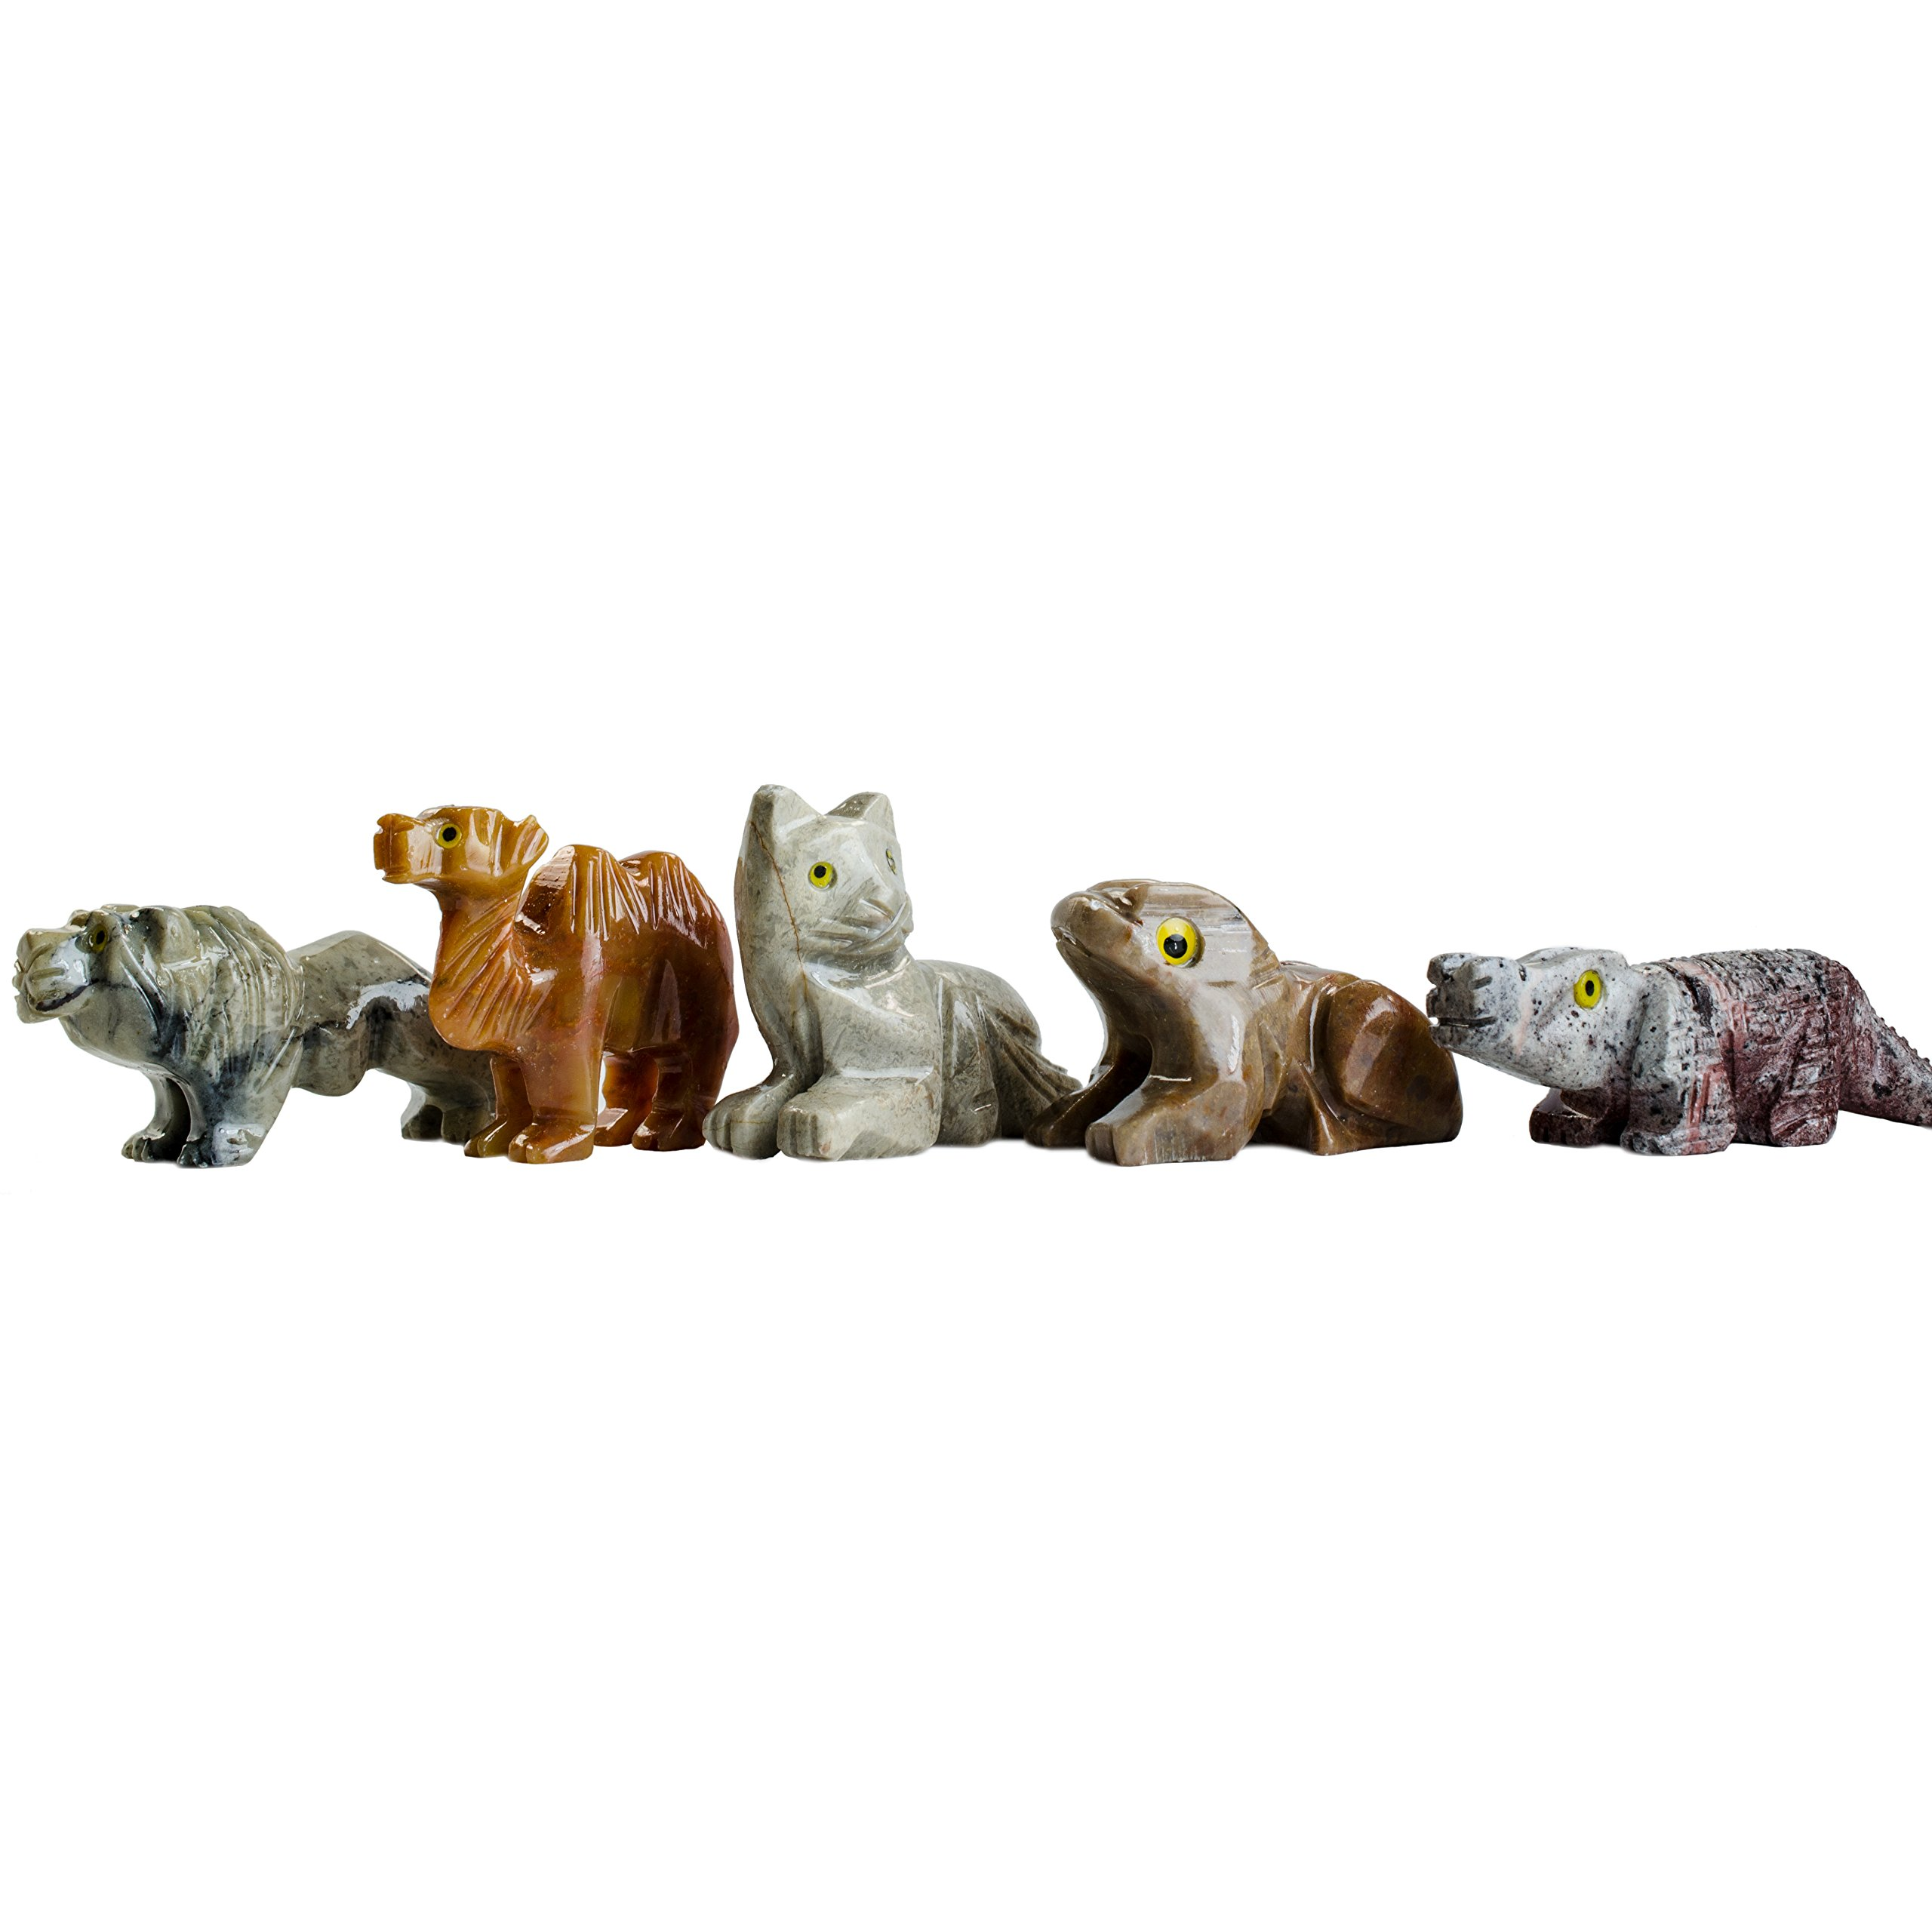 Fantasia Creations: 10 pcs Assorted Soapstone Figurines - Hand Carved Animals and More by Fantasia's Master Artisans for Party Favors, Collecting, Wire Wrapping, Gifts and More!